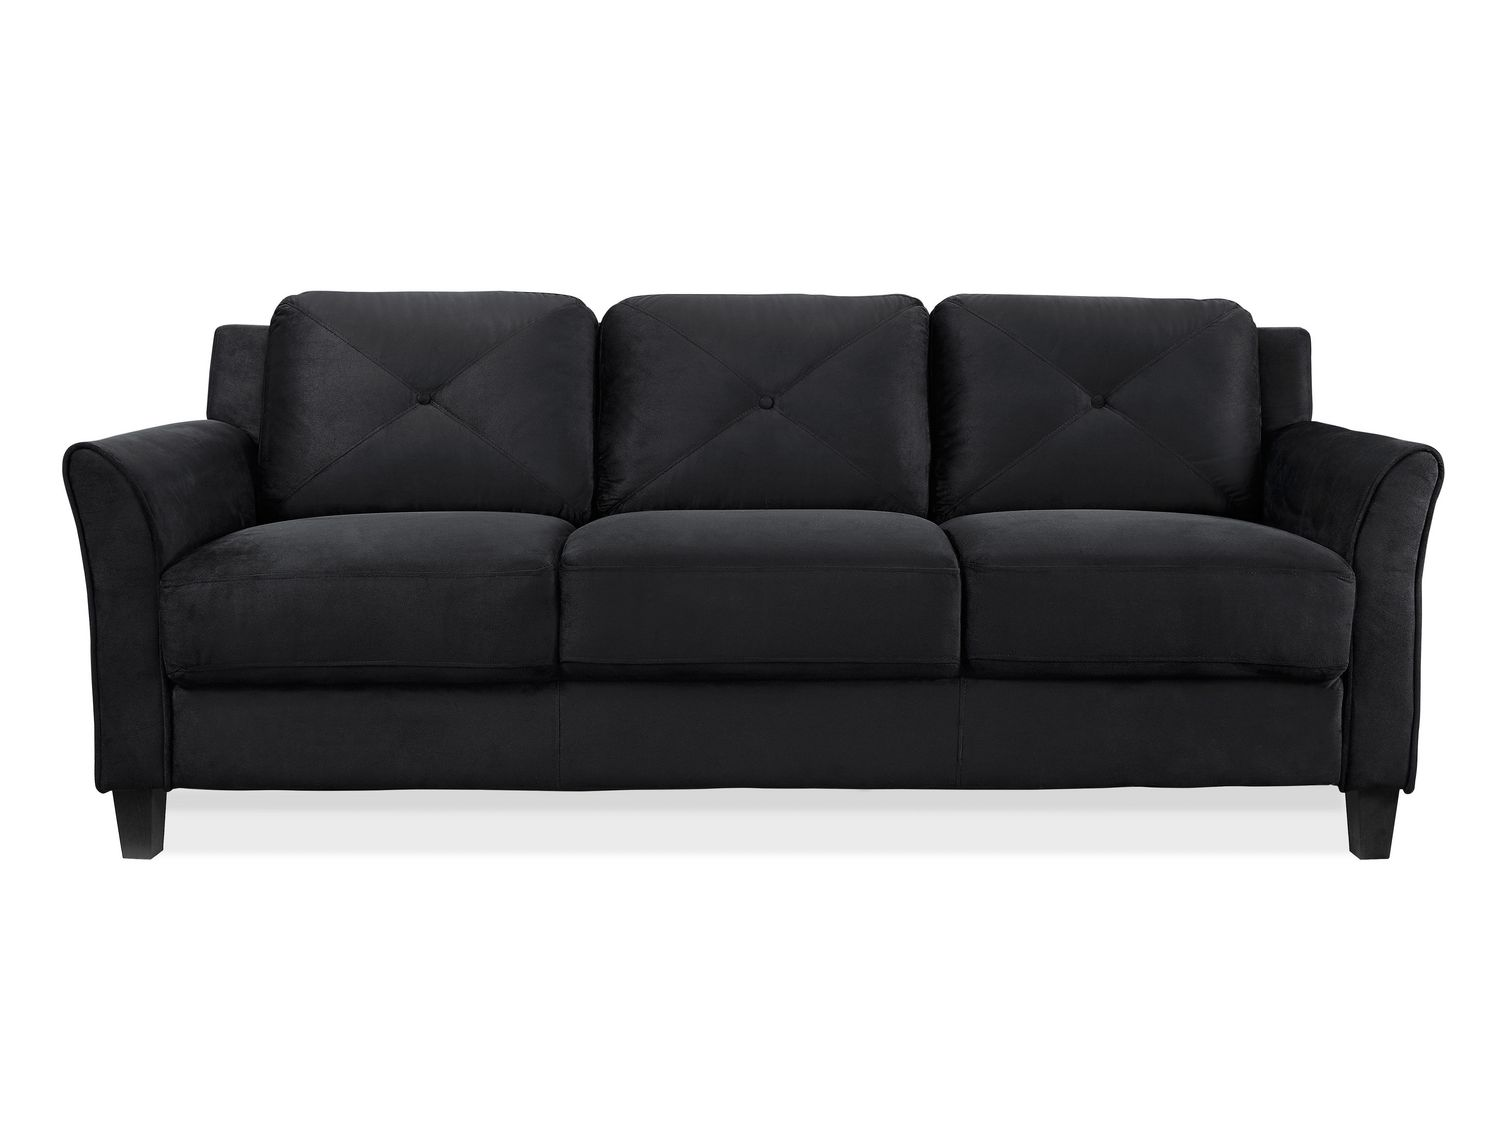 of sofas aifaresidency sectional discount couches com for perfect cheap